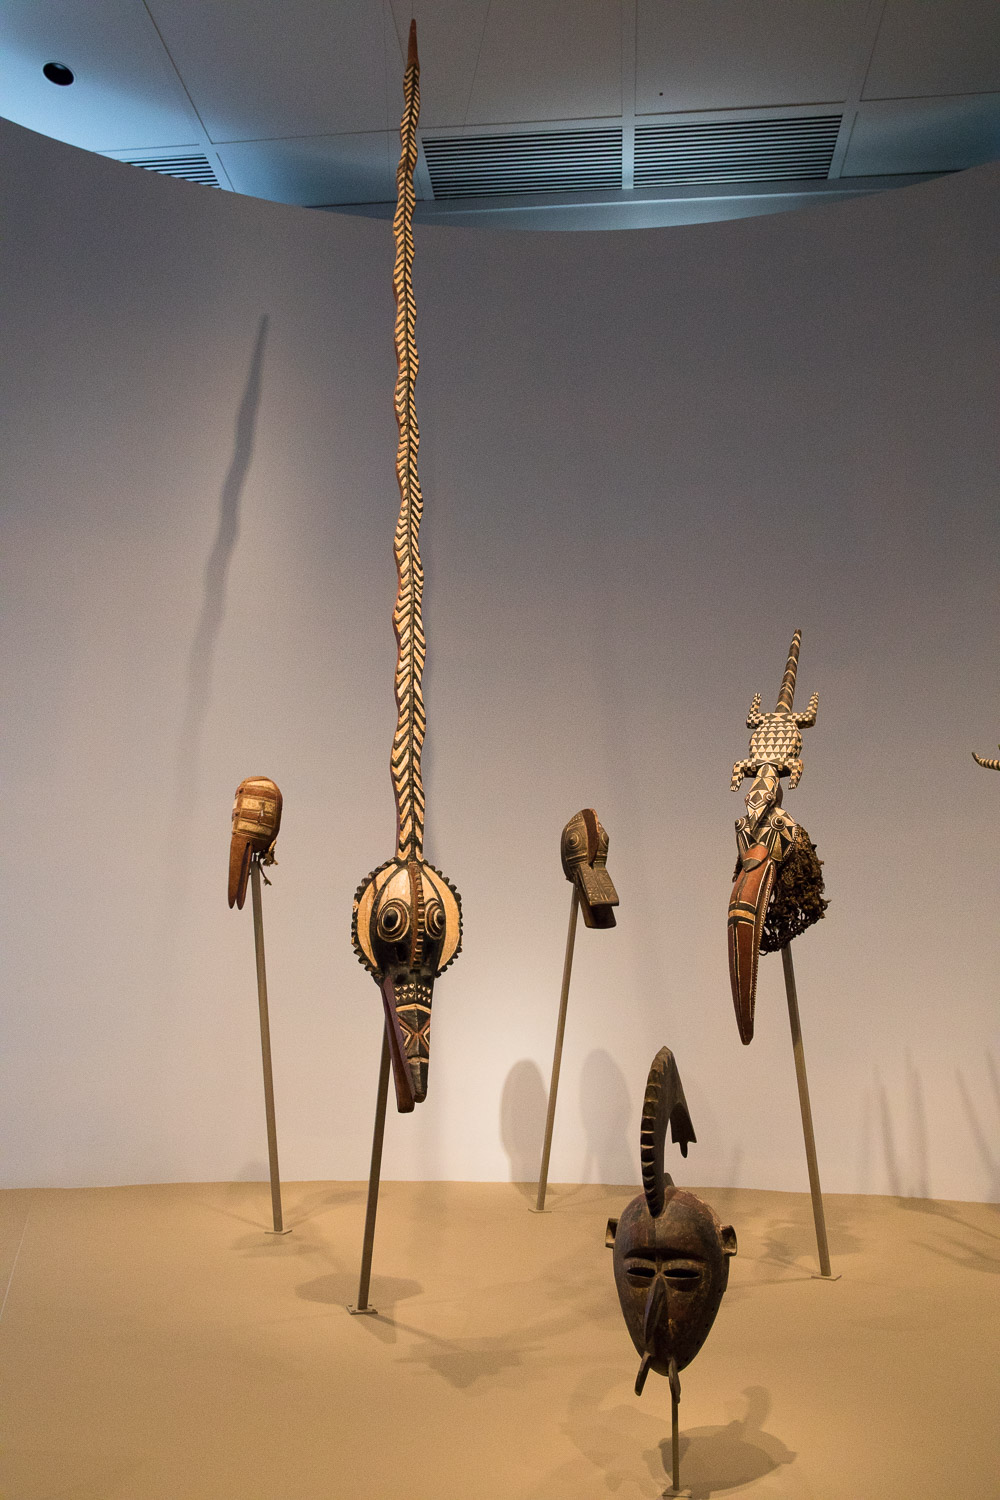 Virginia Museum of Fine Arts - masks in the African art exhibit. The snake mask was extra intriguing.